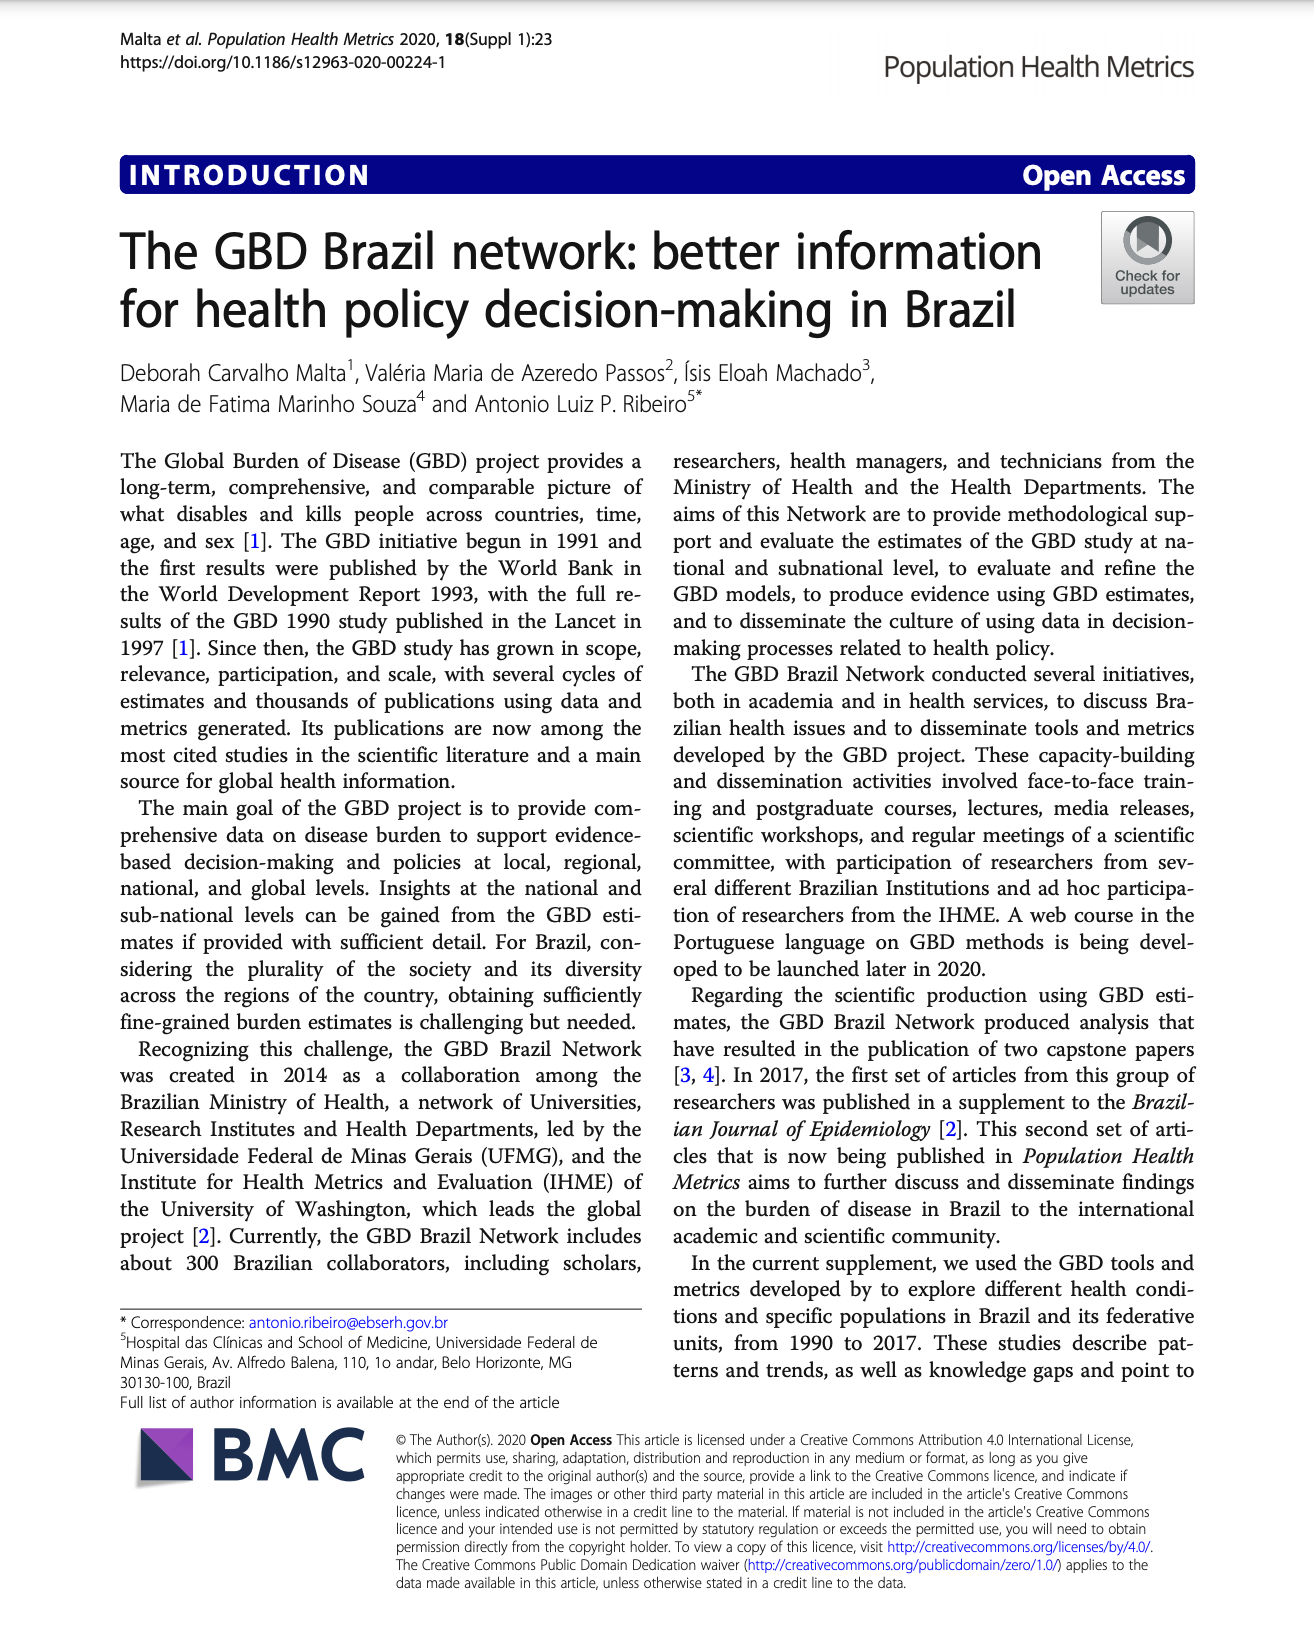 The GBD Brazil network: better information